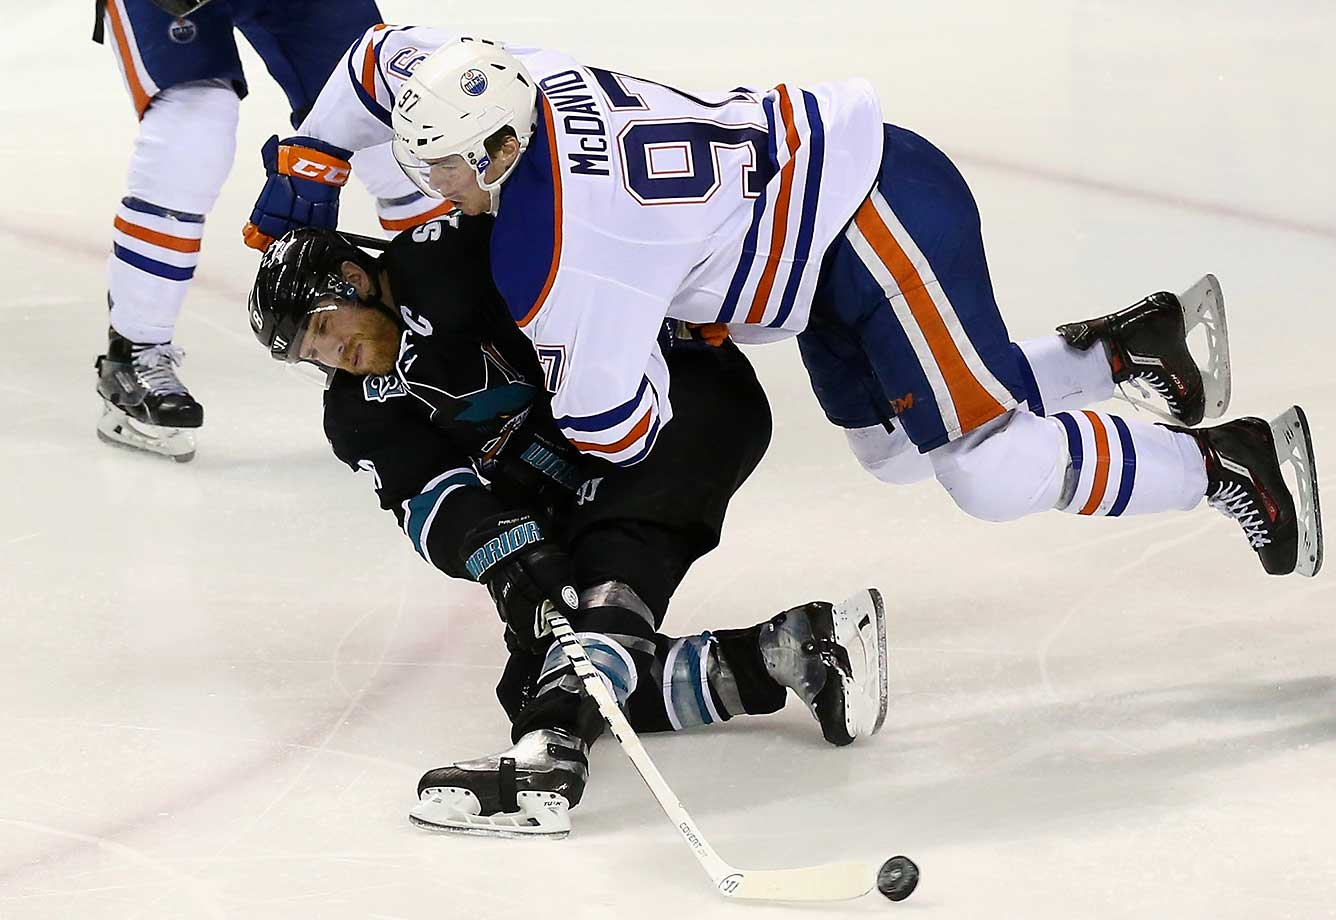 Connor McDavid of the Edmonton Oilers hits Joe Pavelski of the San Jose Sharks.